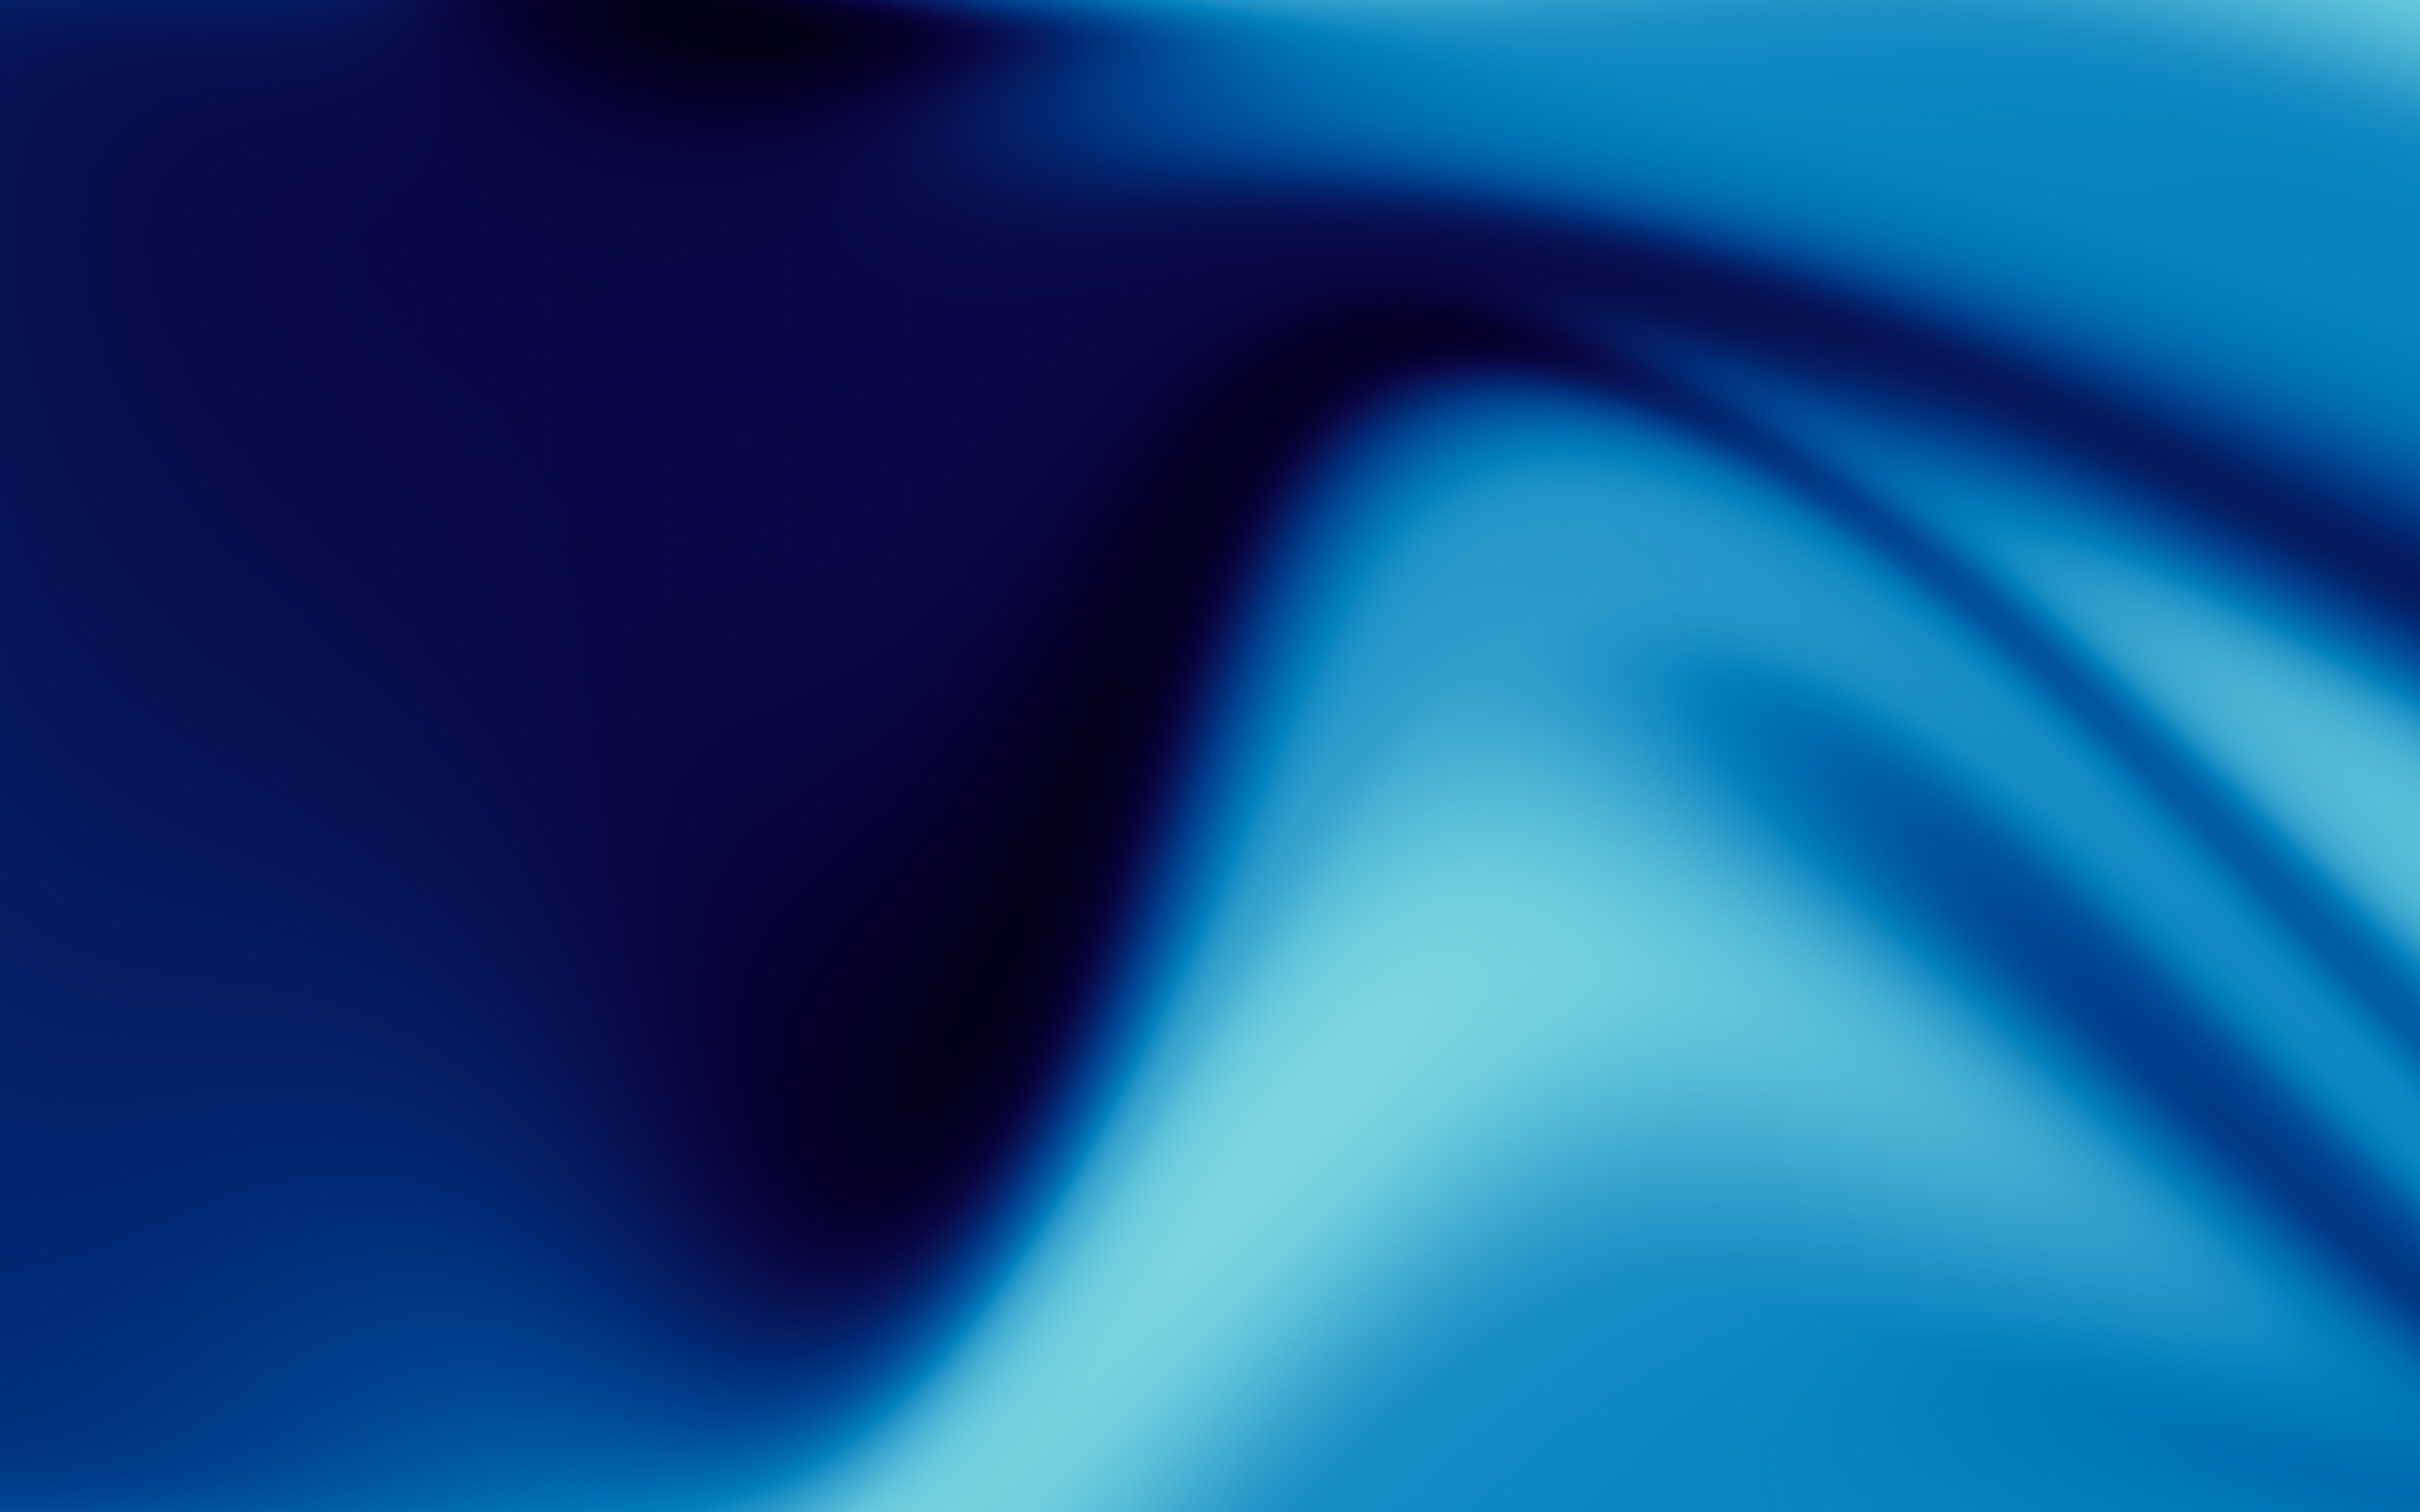 blue-abstract-gradient-4k-zz.jpg